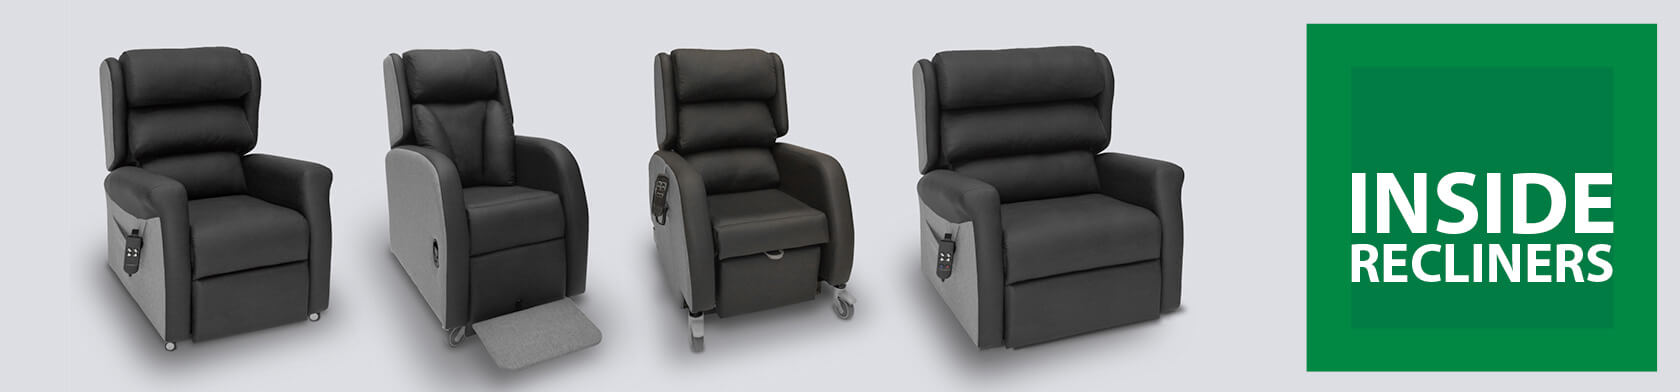 Recliners Healthcare Express Range Proves a Hit